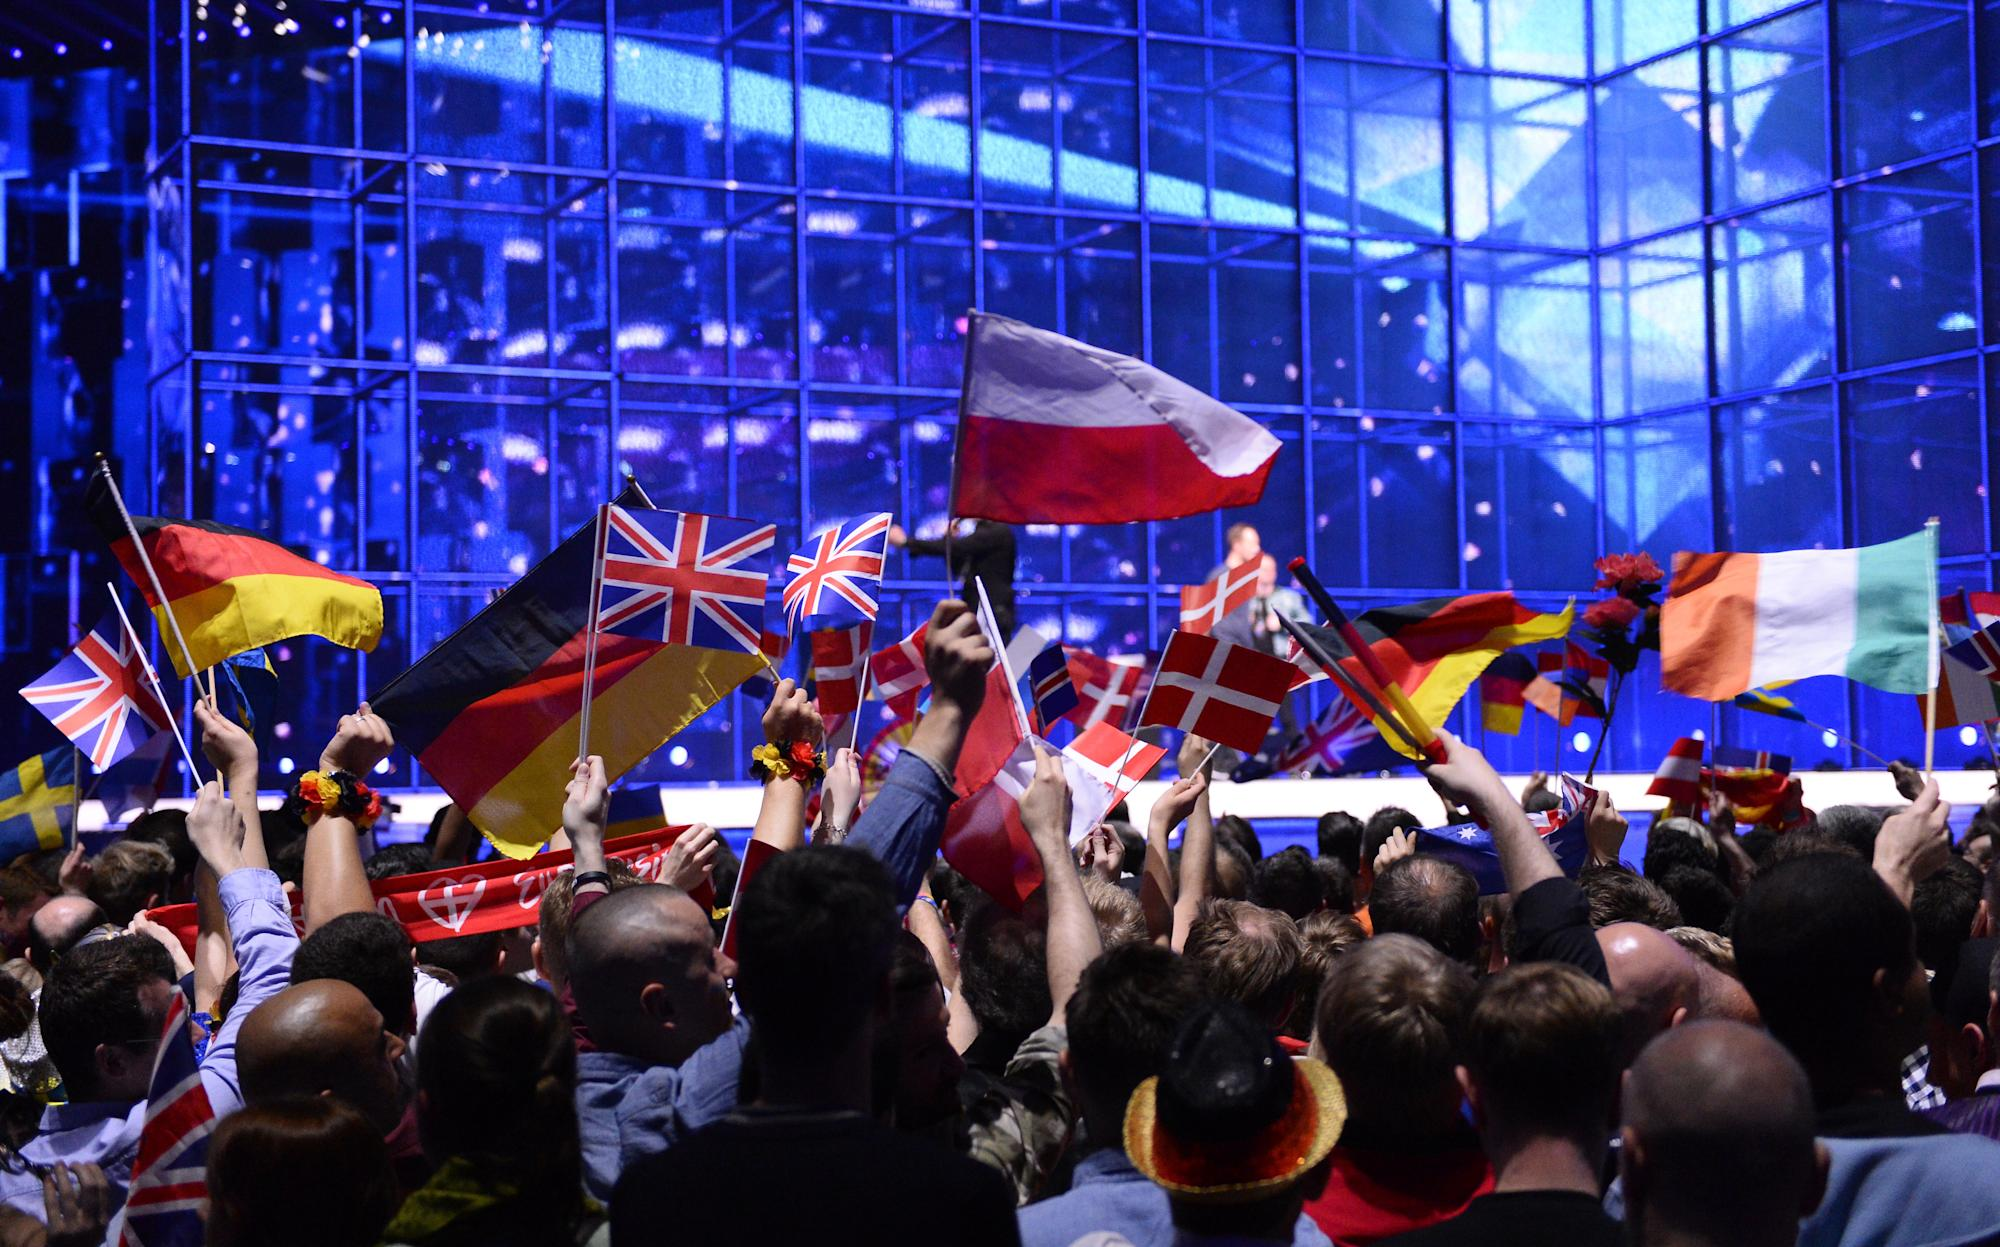 Eurovision song contest 2021 oddschecker betting timecast betting on sports